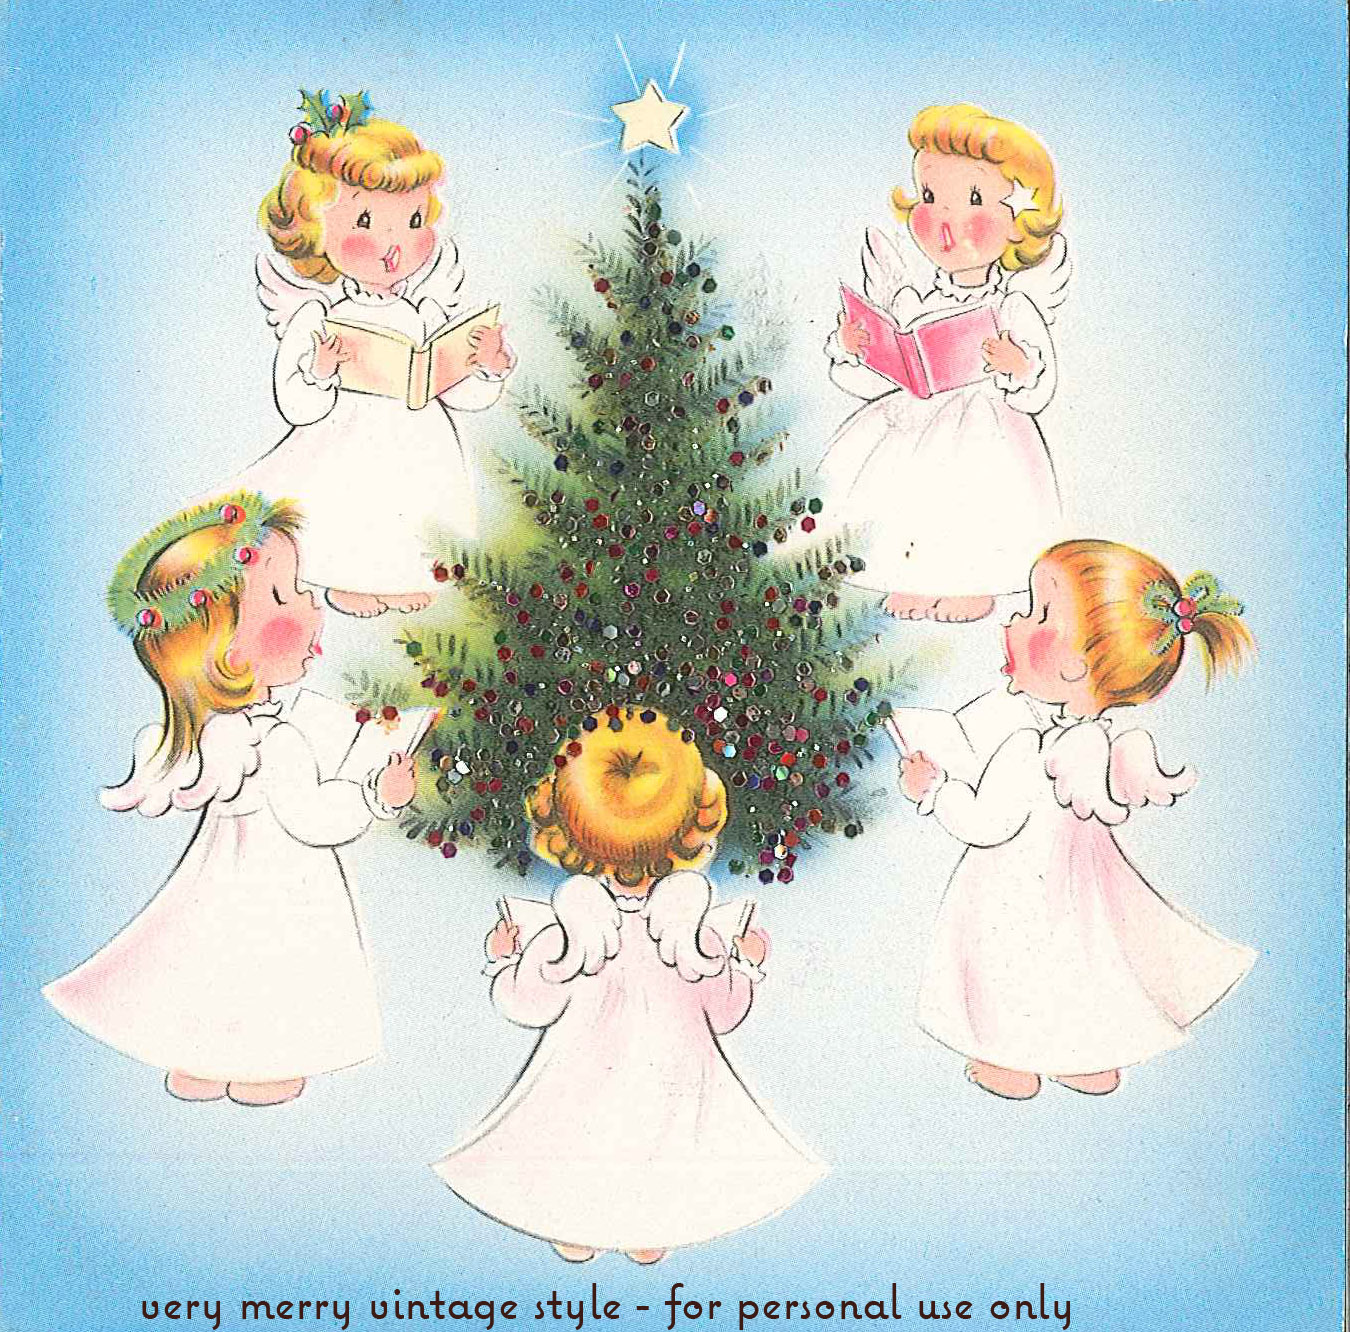 Very merry vintage syle cute angel vintage christmas card for Christmas angels